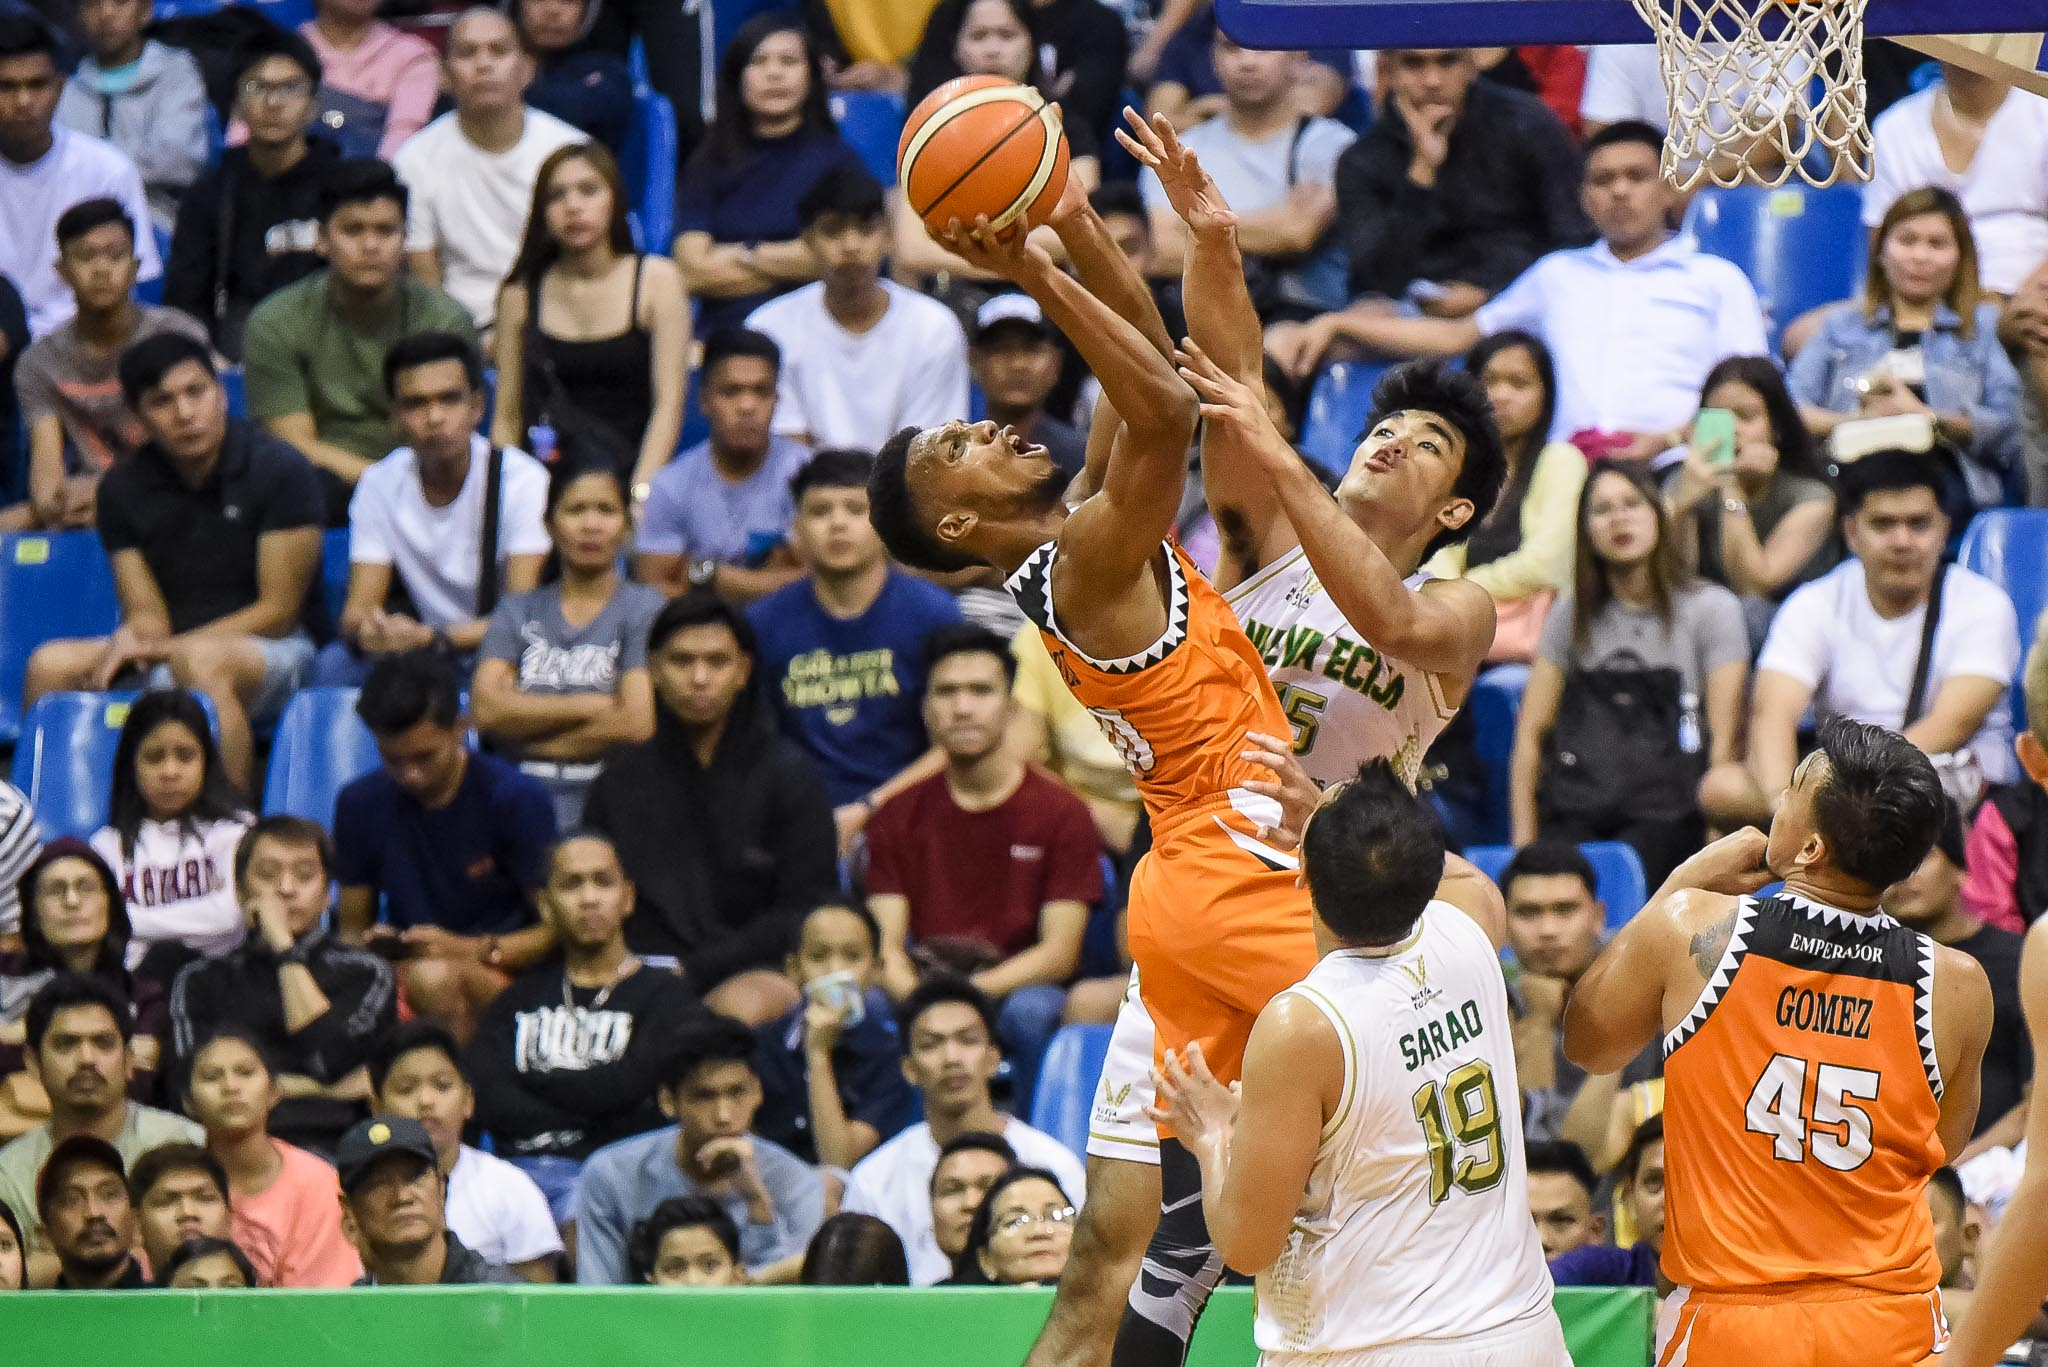 Tiebreaker Times Felix Apreku takes over late as Pampanga ends Nueva Ecija's MPBL playoff dream Basketball MPBL News  Pampanga Giant Green Lanterns Nueva Ecija Rice Vanguards Michael Juico Levi Hernandez Jepoy SARAO Jai Reyes Felix Apreku Bong Ramos 2019-20 MPBL Lakan Cup